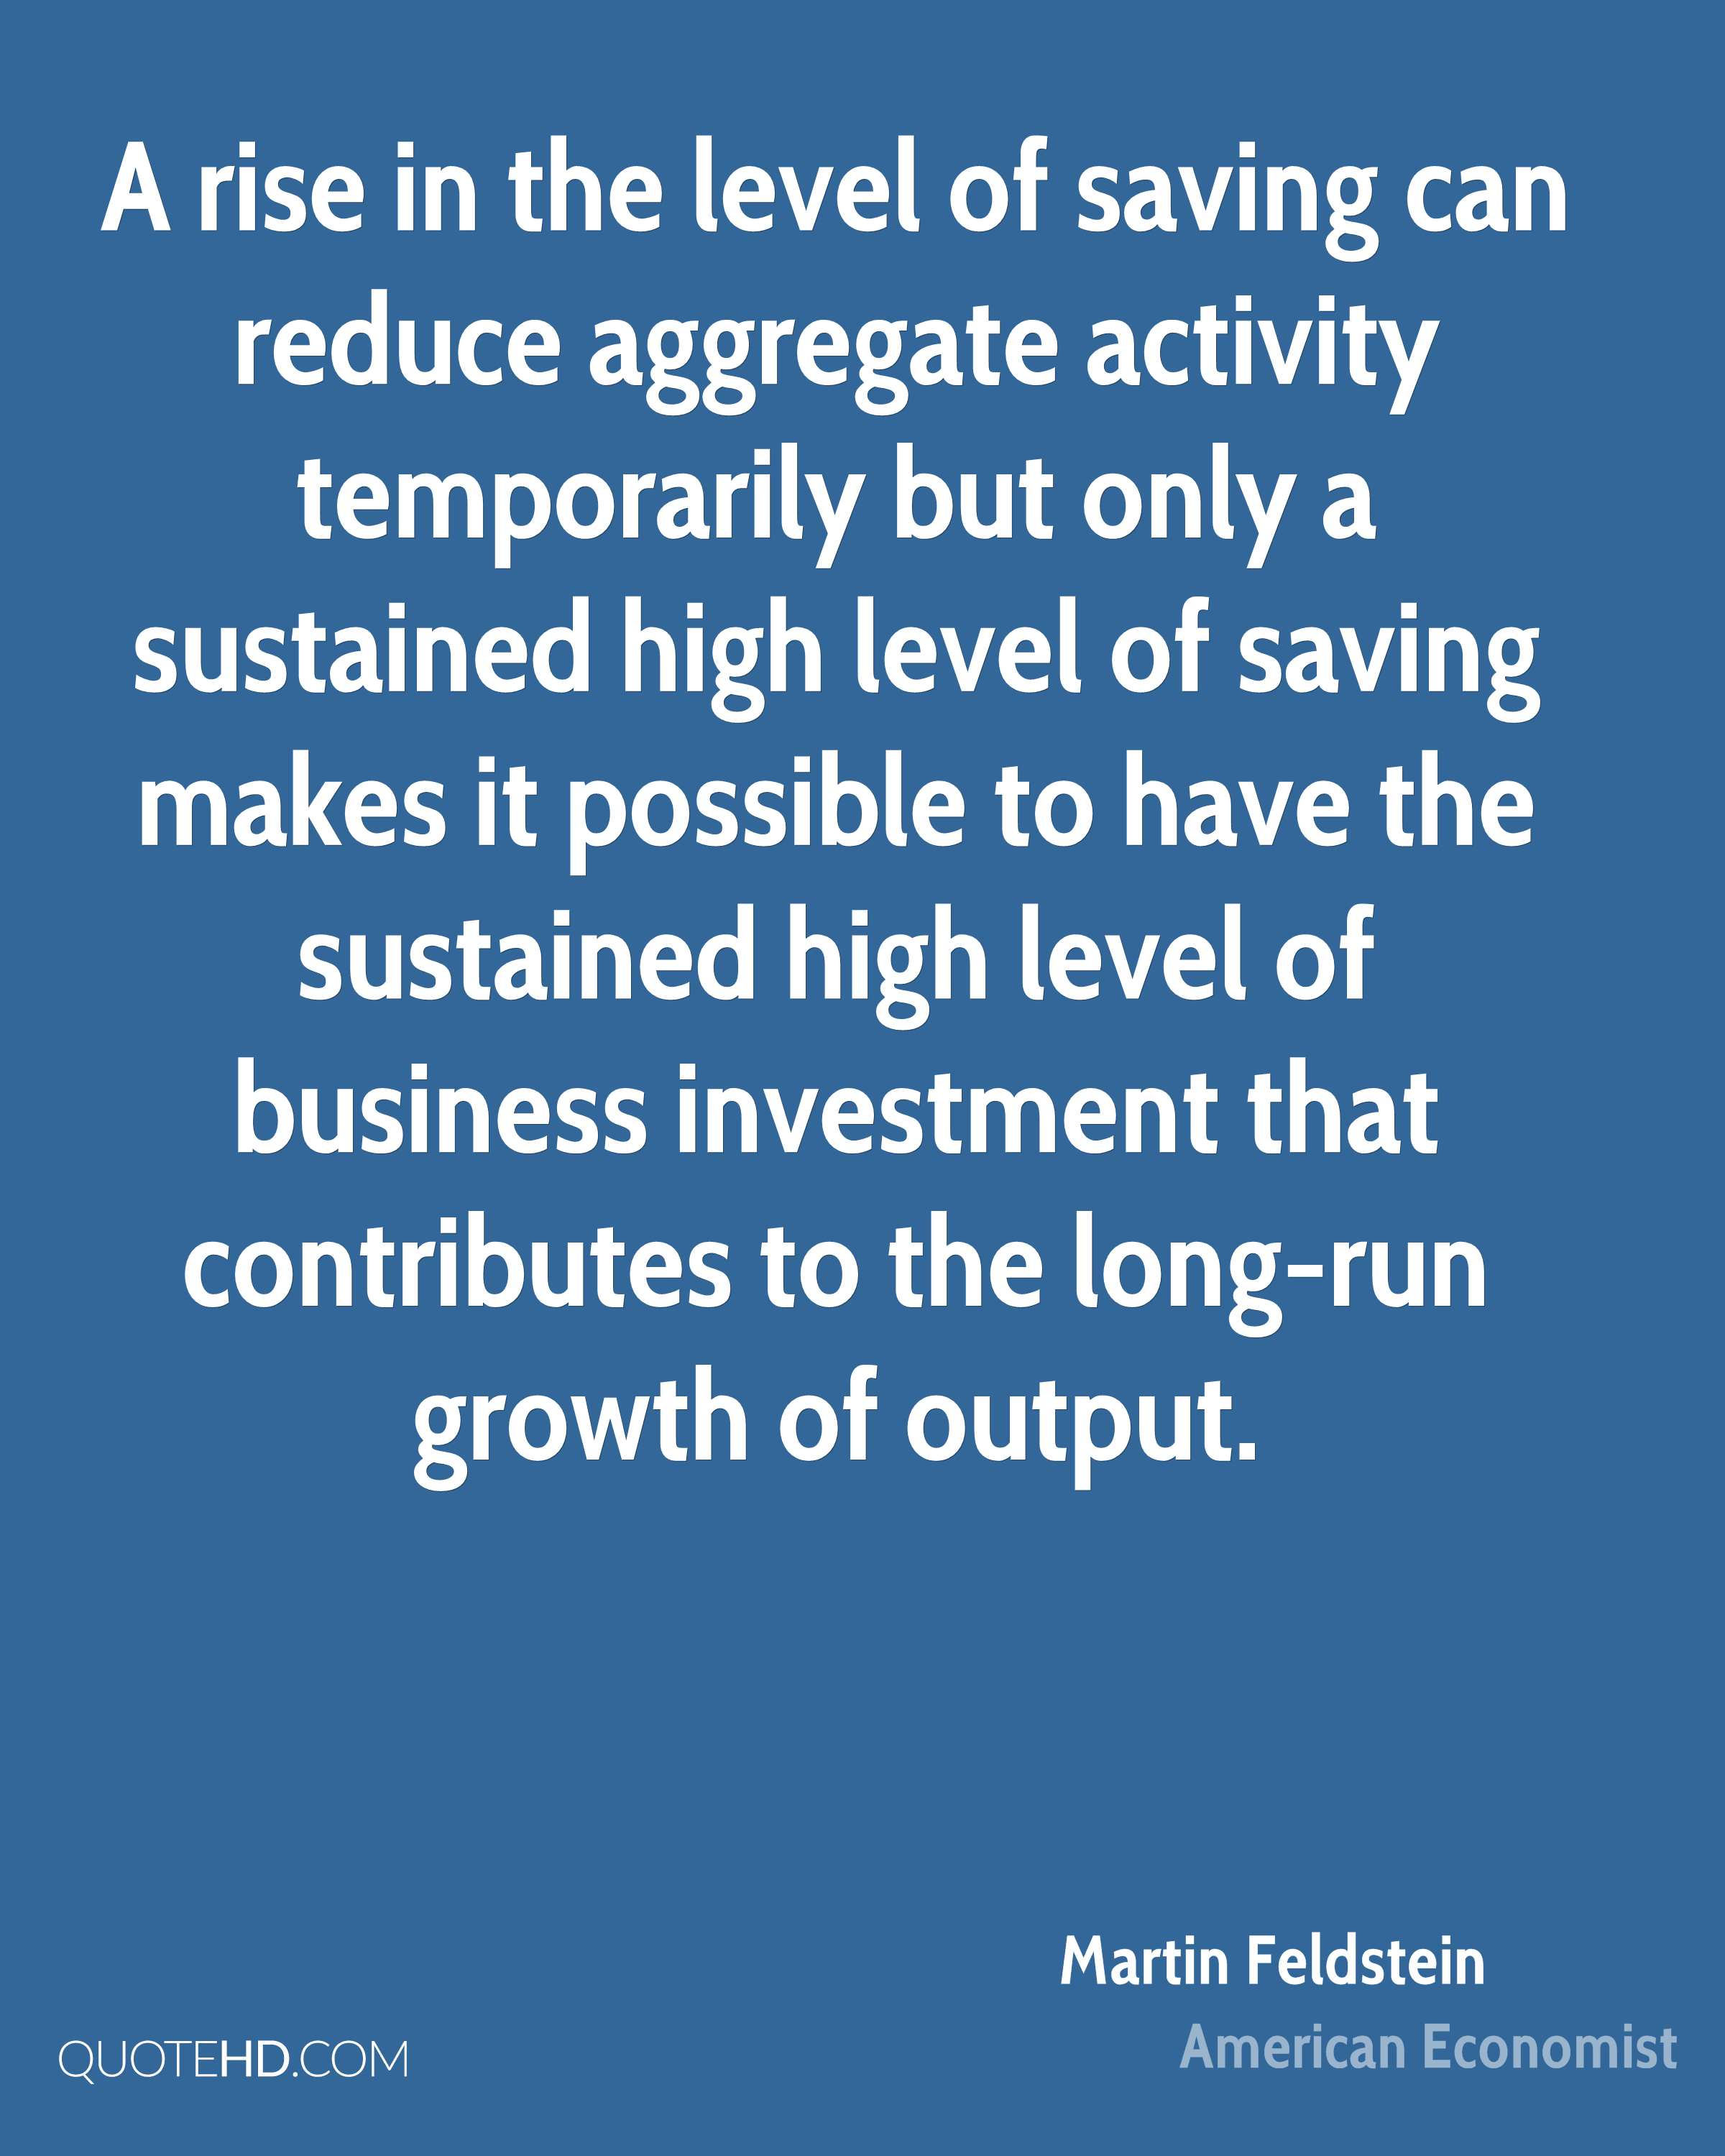 A rise in the level of saving can reduce aggregate activity temporarily but only a sustained high level of saving makes it possible to have the sustained high level of business investment that contributes to the long-run growth of output.